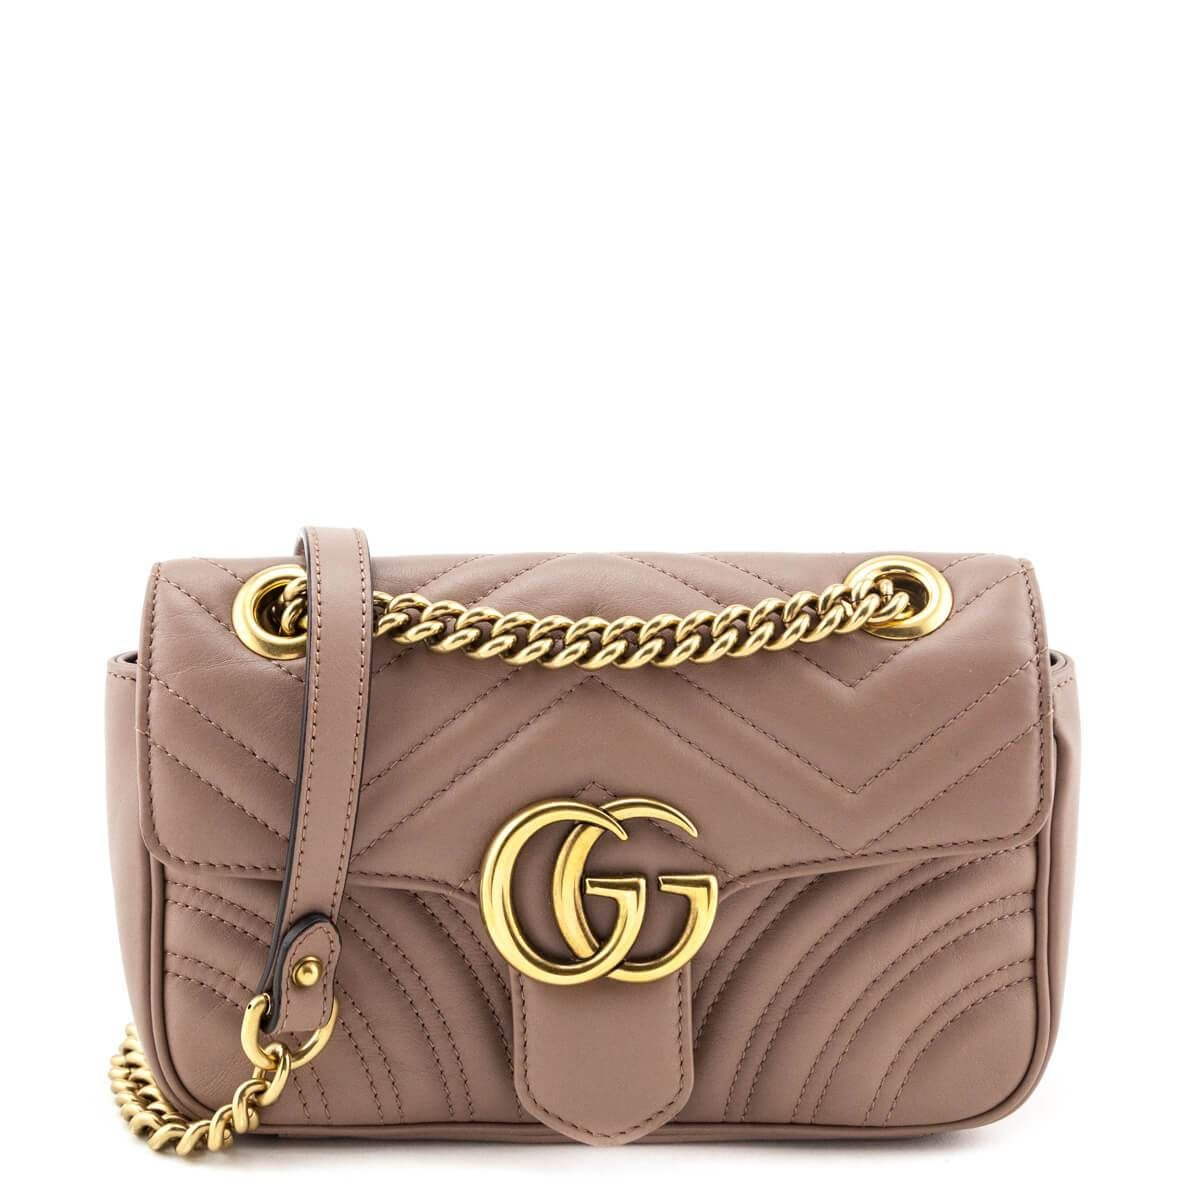 Gucci Dusty Rose Calfskin Matelasse Mini GG Marmon